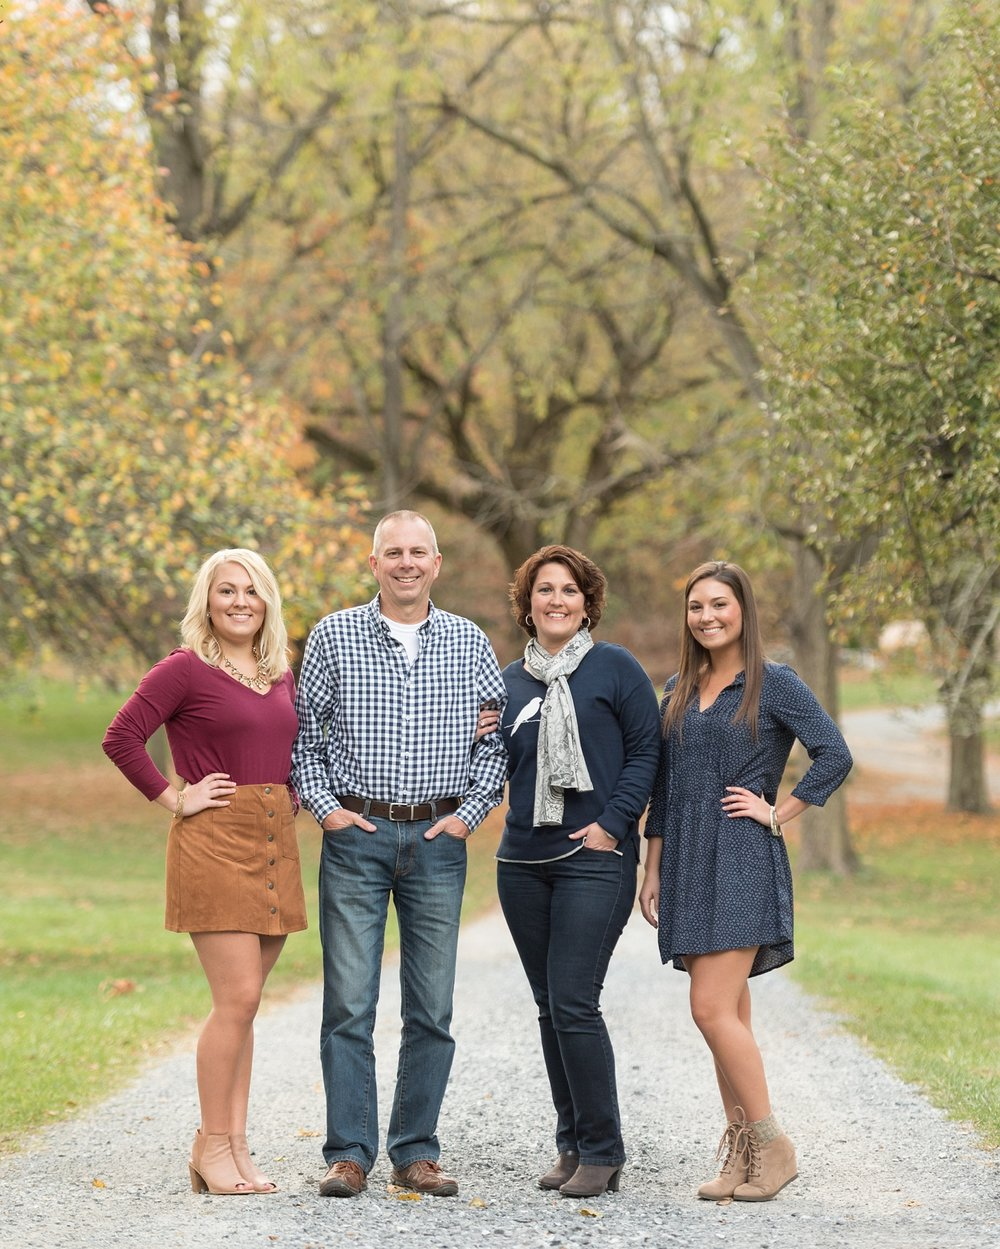 Rockford Plantation Lancaster county family portrait photographer photo